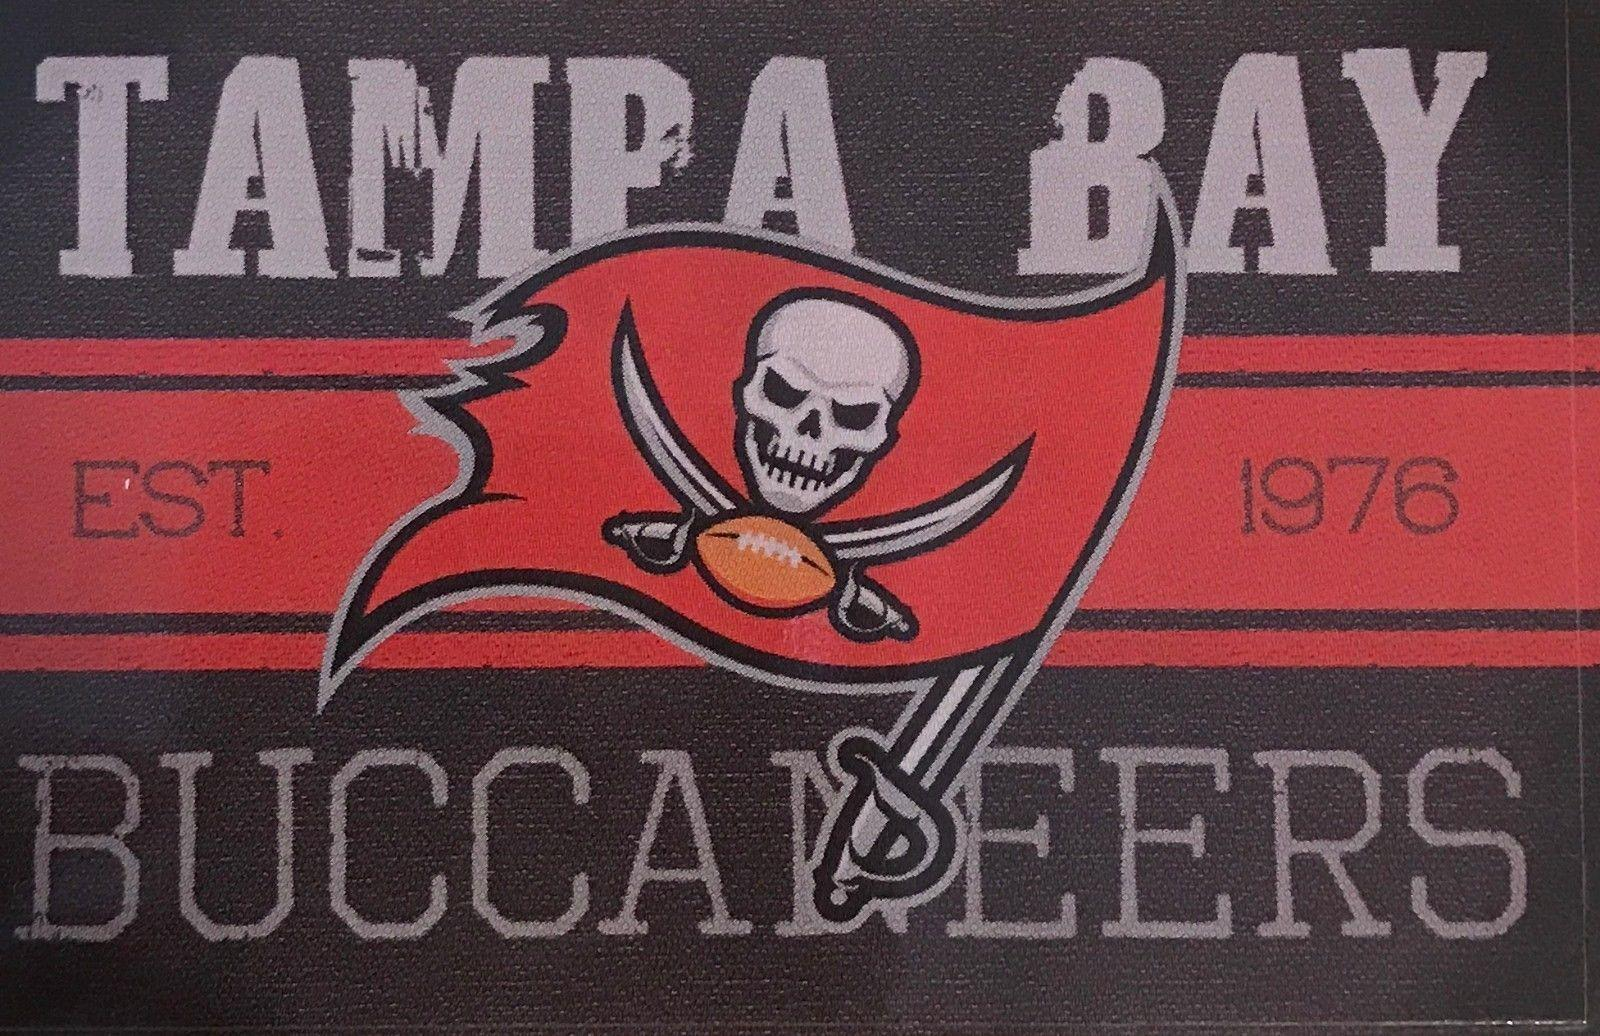 Tampa Bay Buccaneers	ロゴ